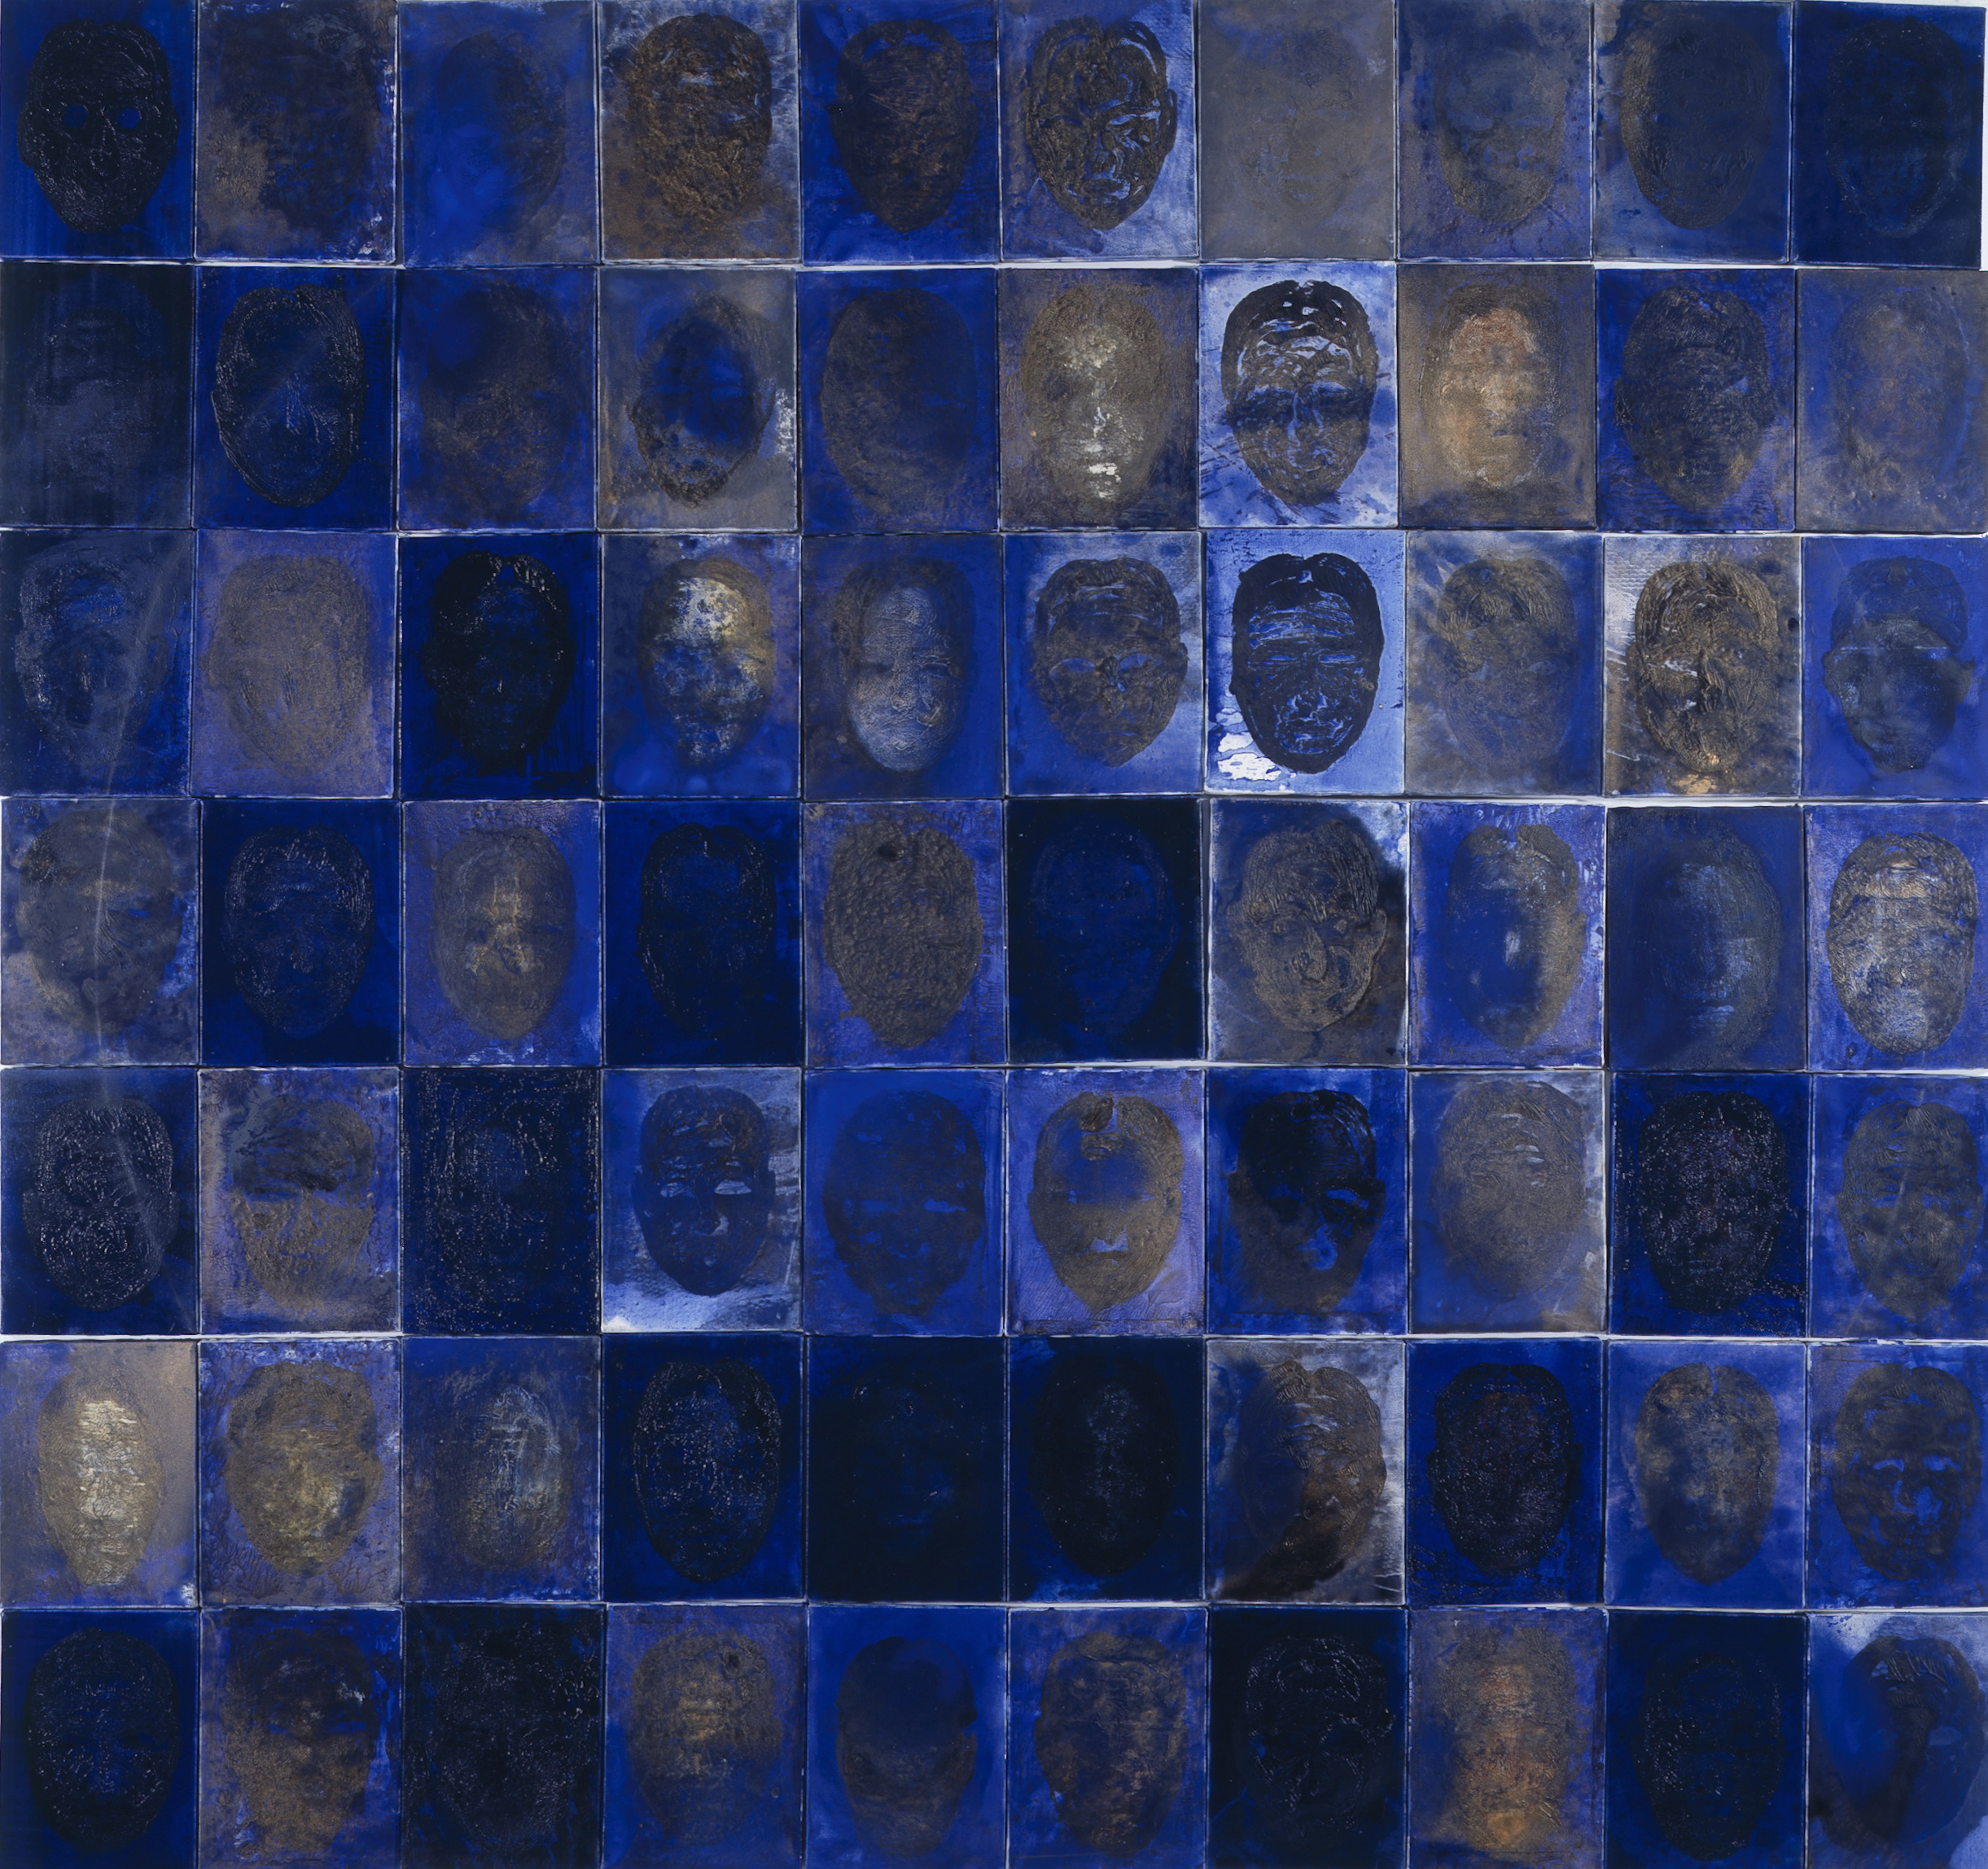 SoHyun Bae, An Ode to the Women of Josun Dynasty, 1997, oil on canvas (70 panels), 94 x 90 inches